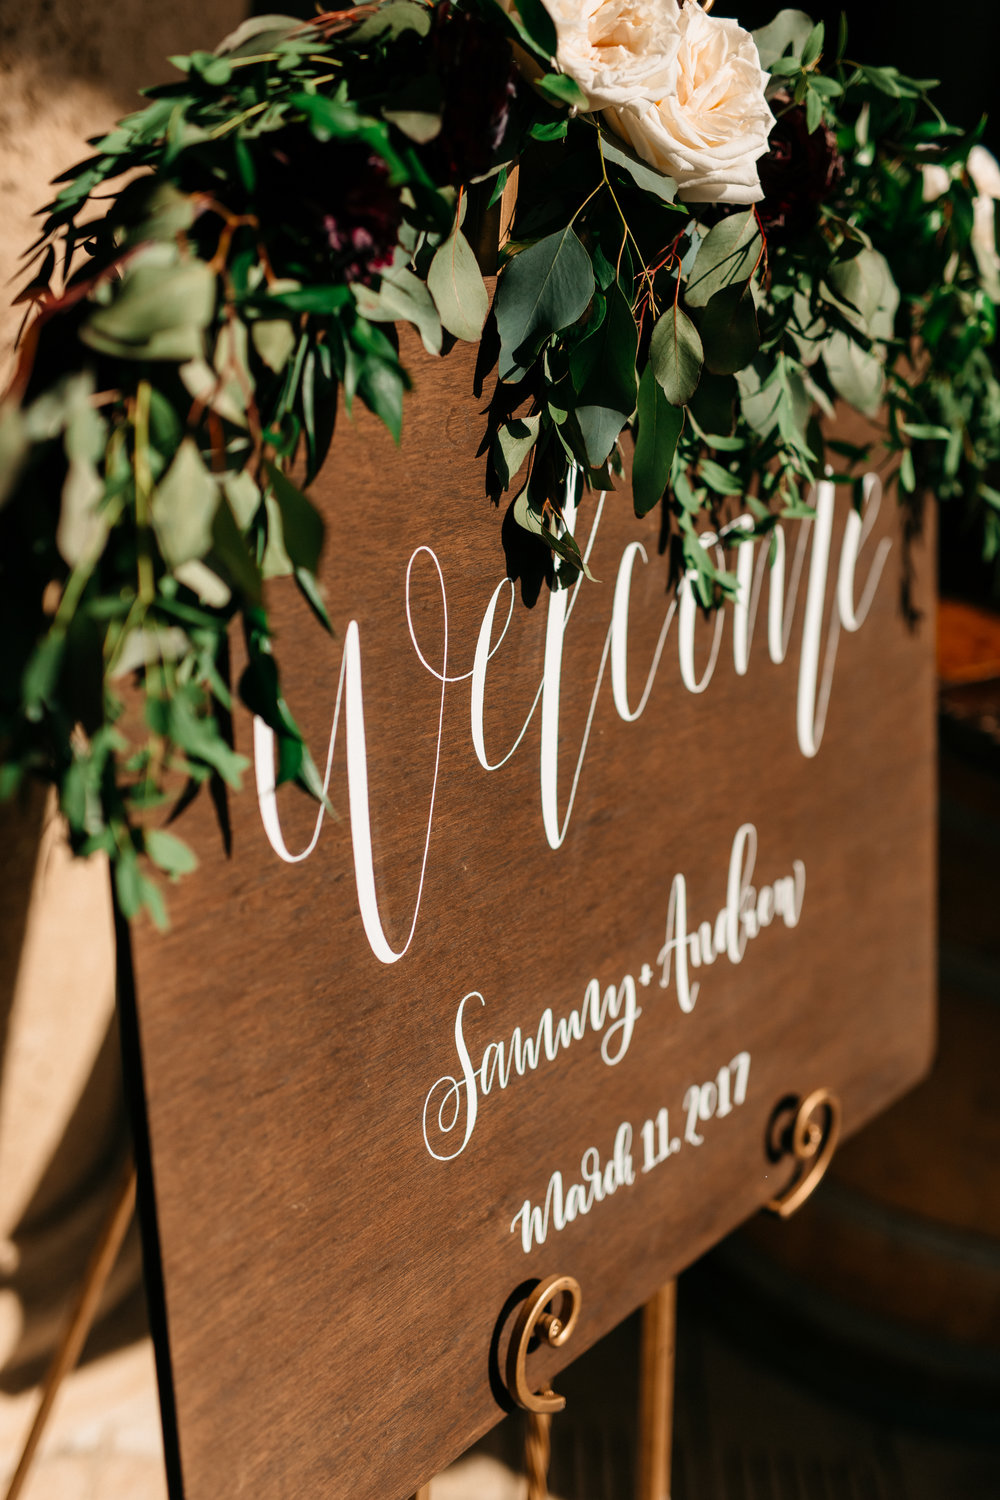 Wedding Welcome Calligraphy Signage with garlands